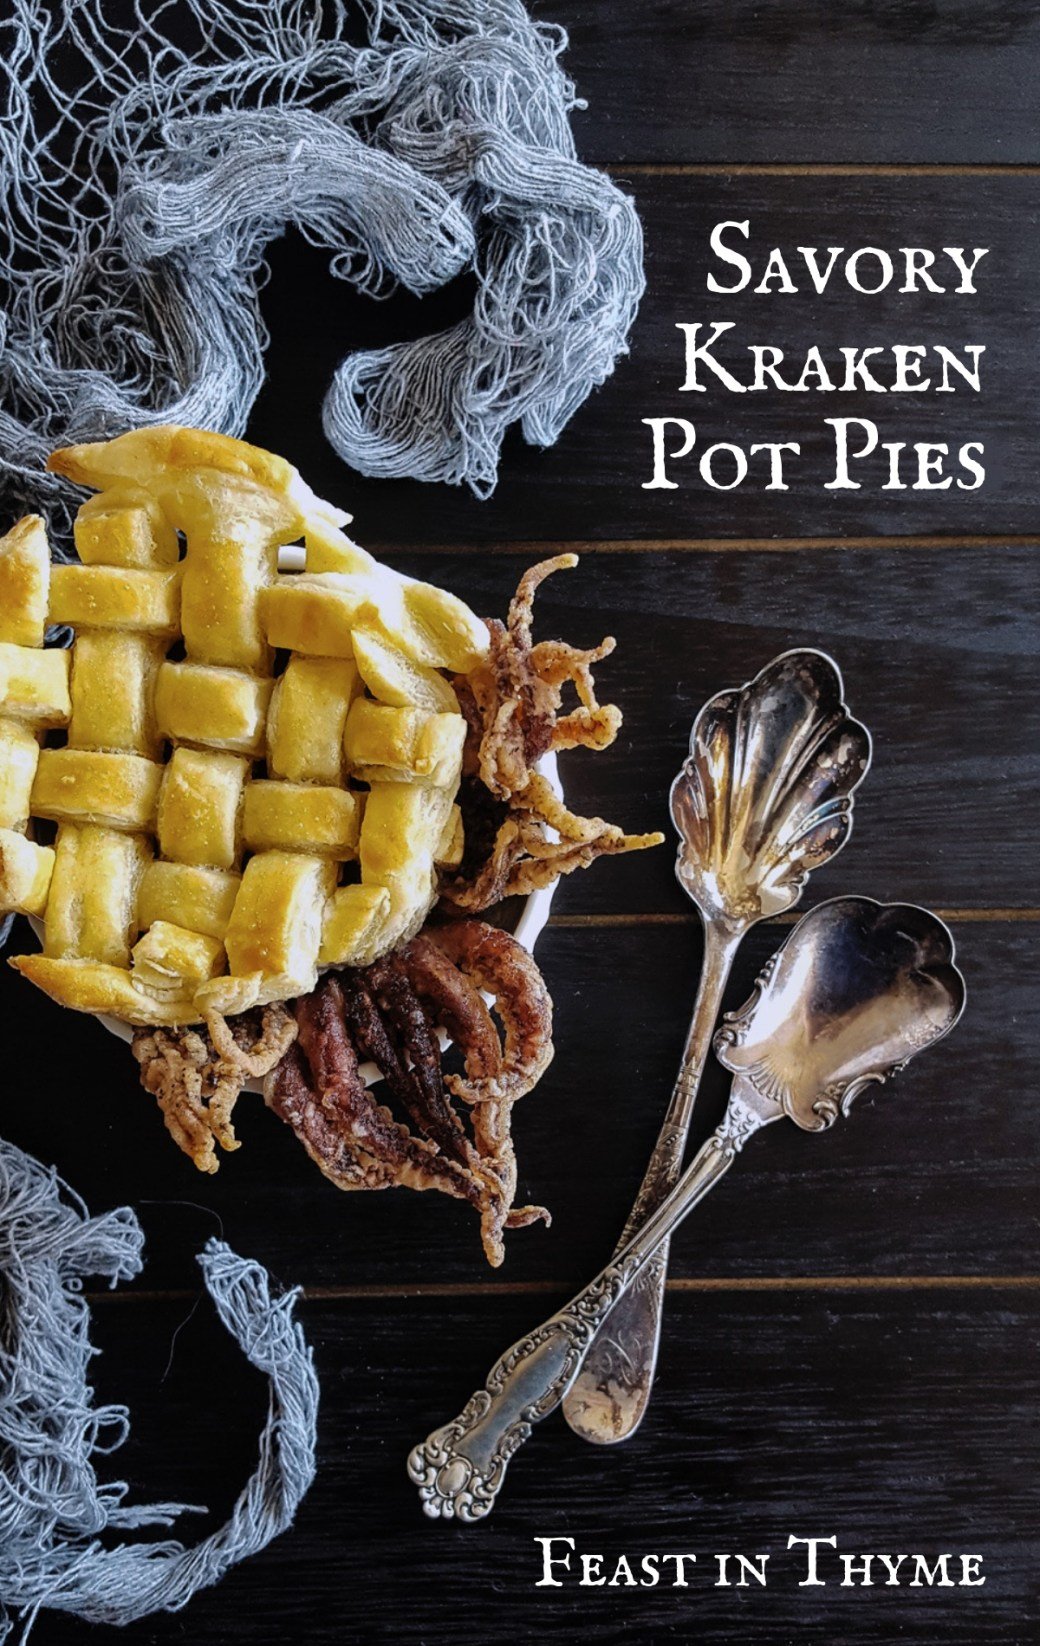 Sweet & Creamy Crab & Calamari Seafood Bisque get dressed up for Halloween as Savory Kraken Pot Pies! With black squid ink, lightly fried tentacles, and a buttery pastry top, it's easy to believe these little horrors come straight from the deep seas. #seamonster #kraken #potpie #halloween | FeastInThyme.com